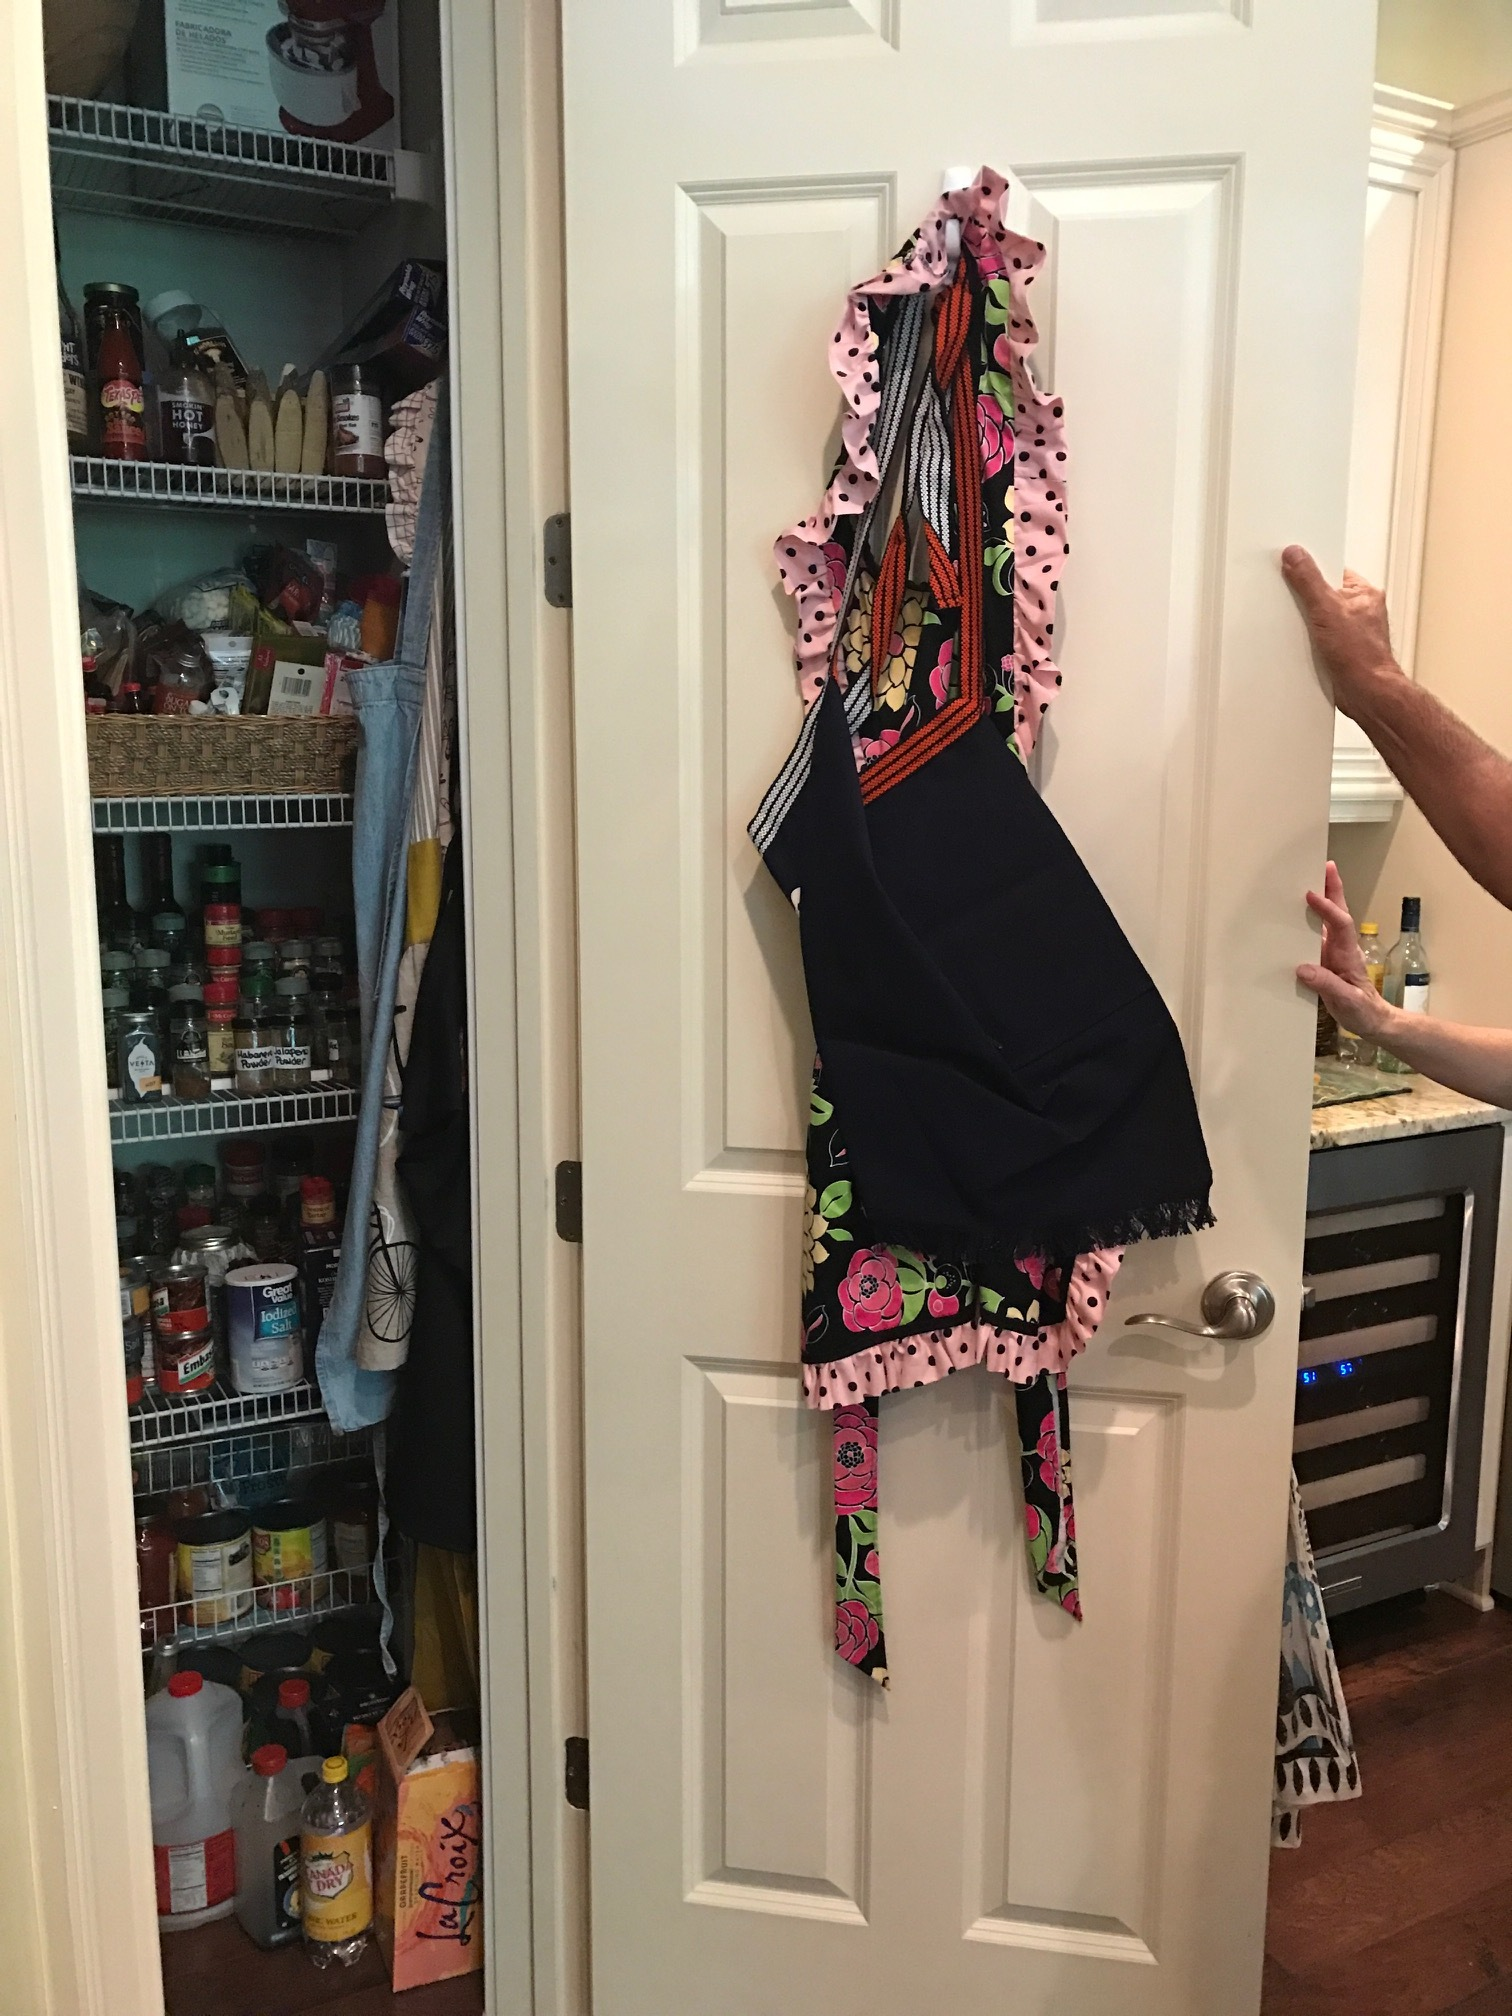 Kitchen Pantry with Door Spice Rack - Before